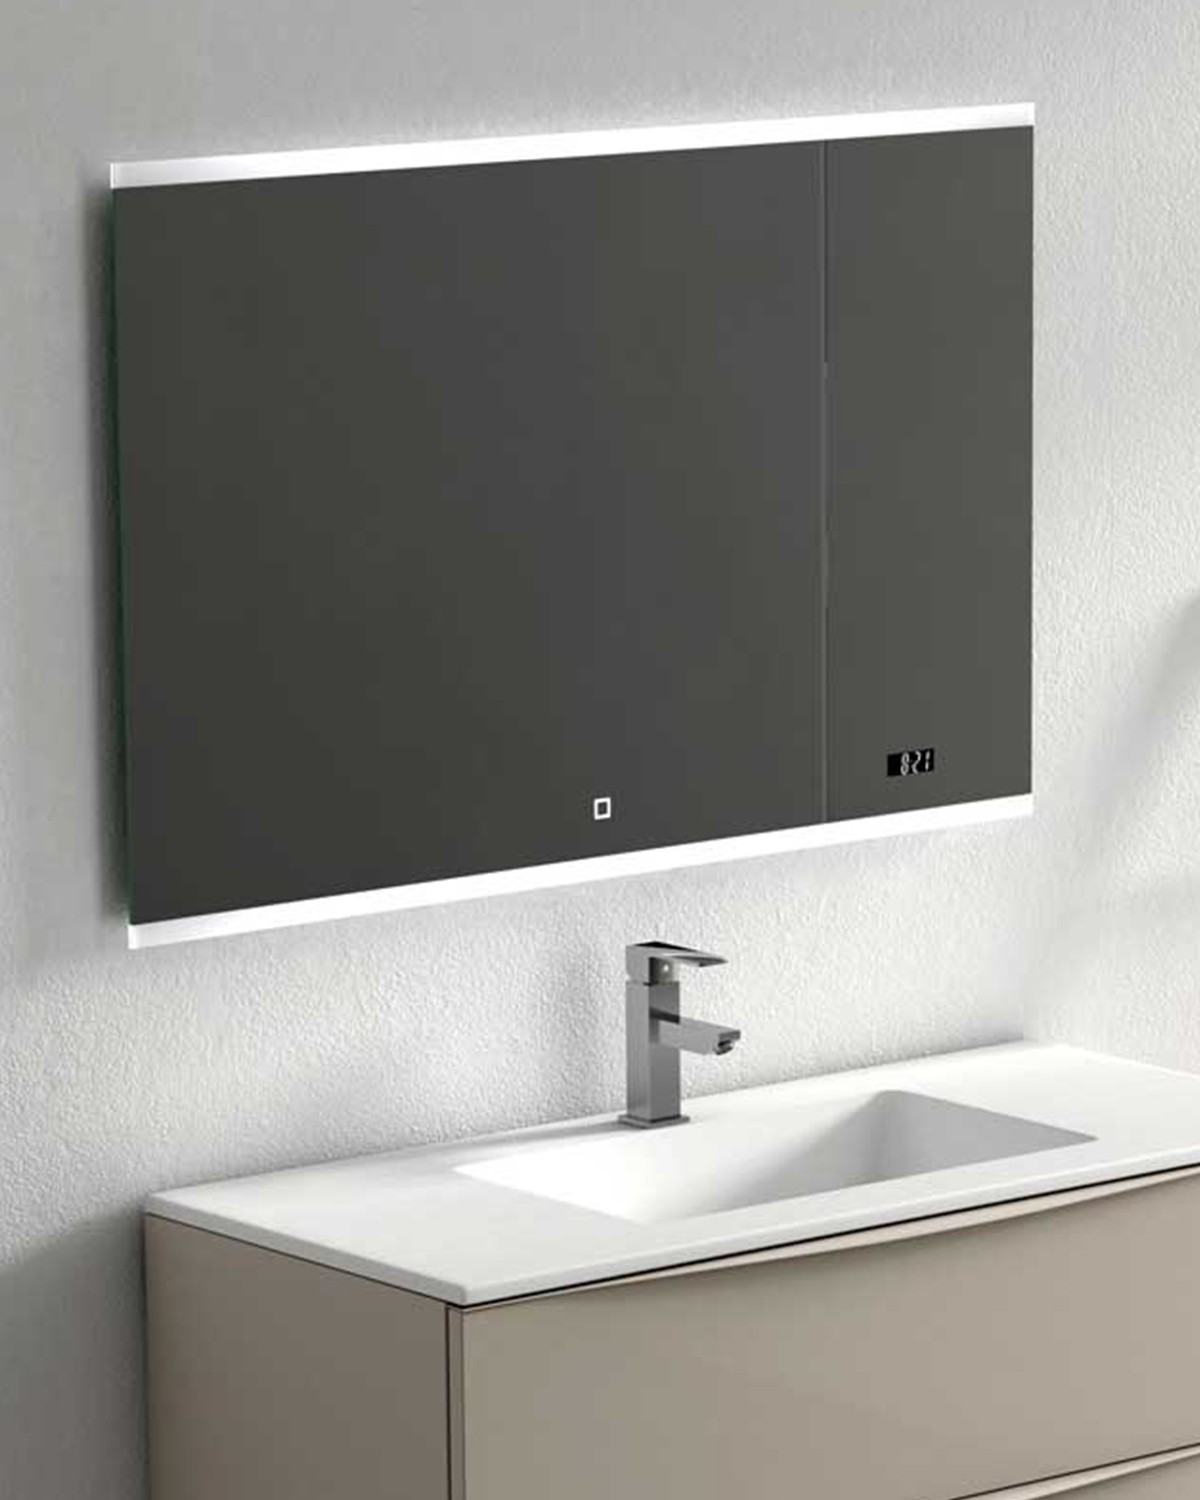 Bathroom Mirror Spoty 80 100x65 Cm Anti Fog Lights And Speakers